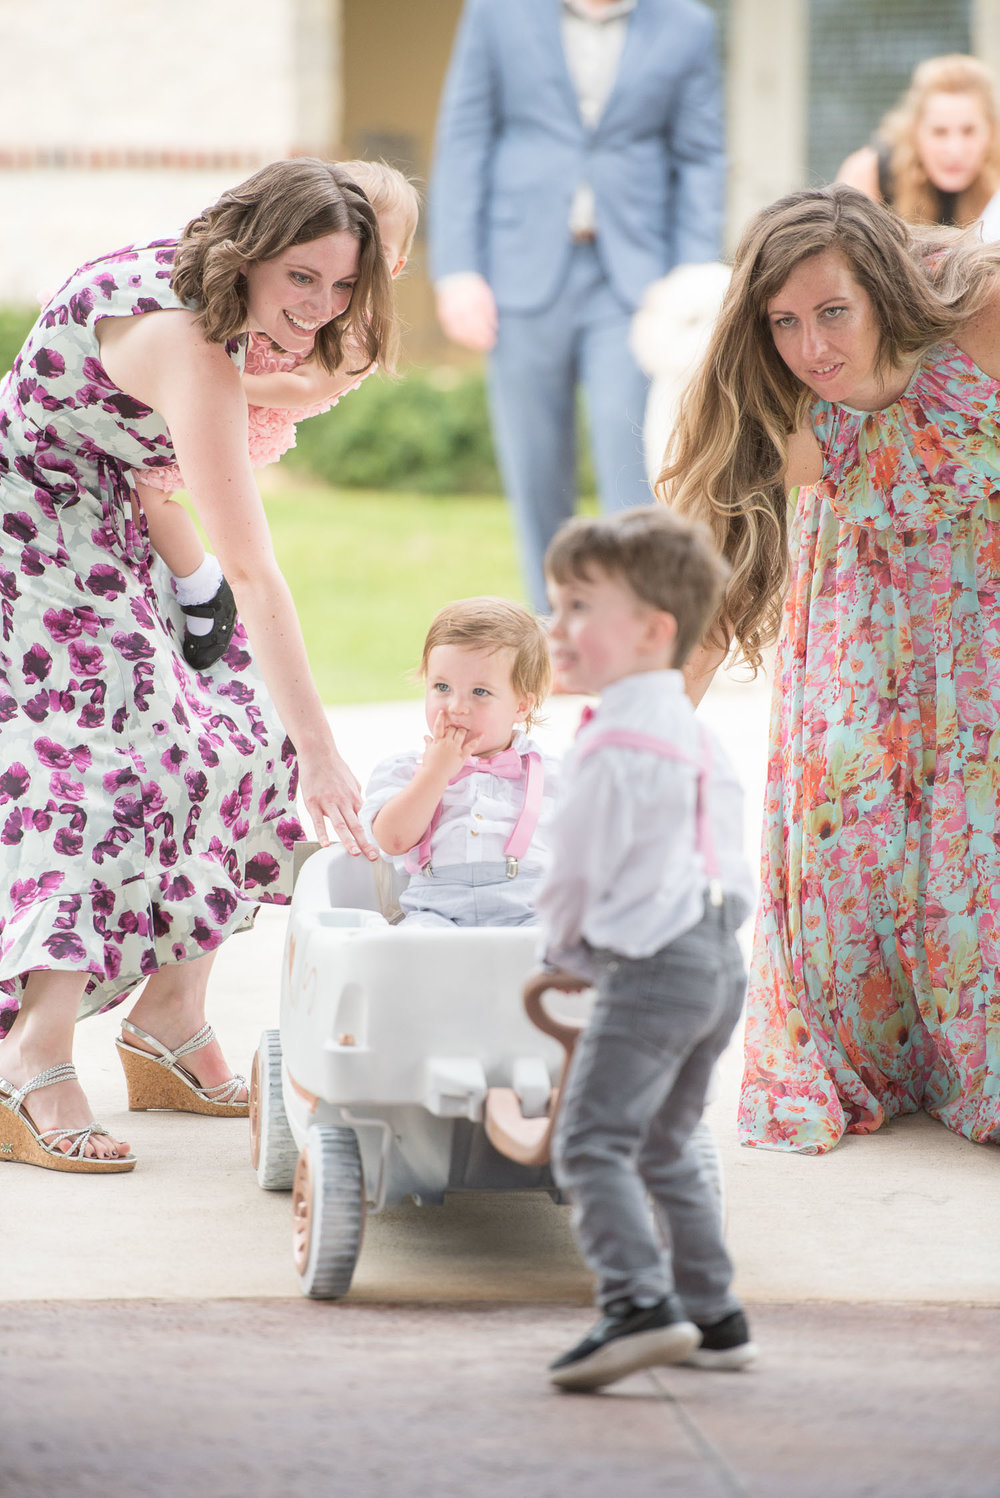 61 ring bearers in wagon down aisle.jpg